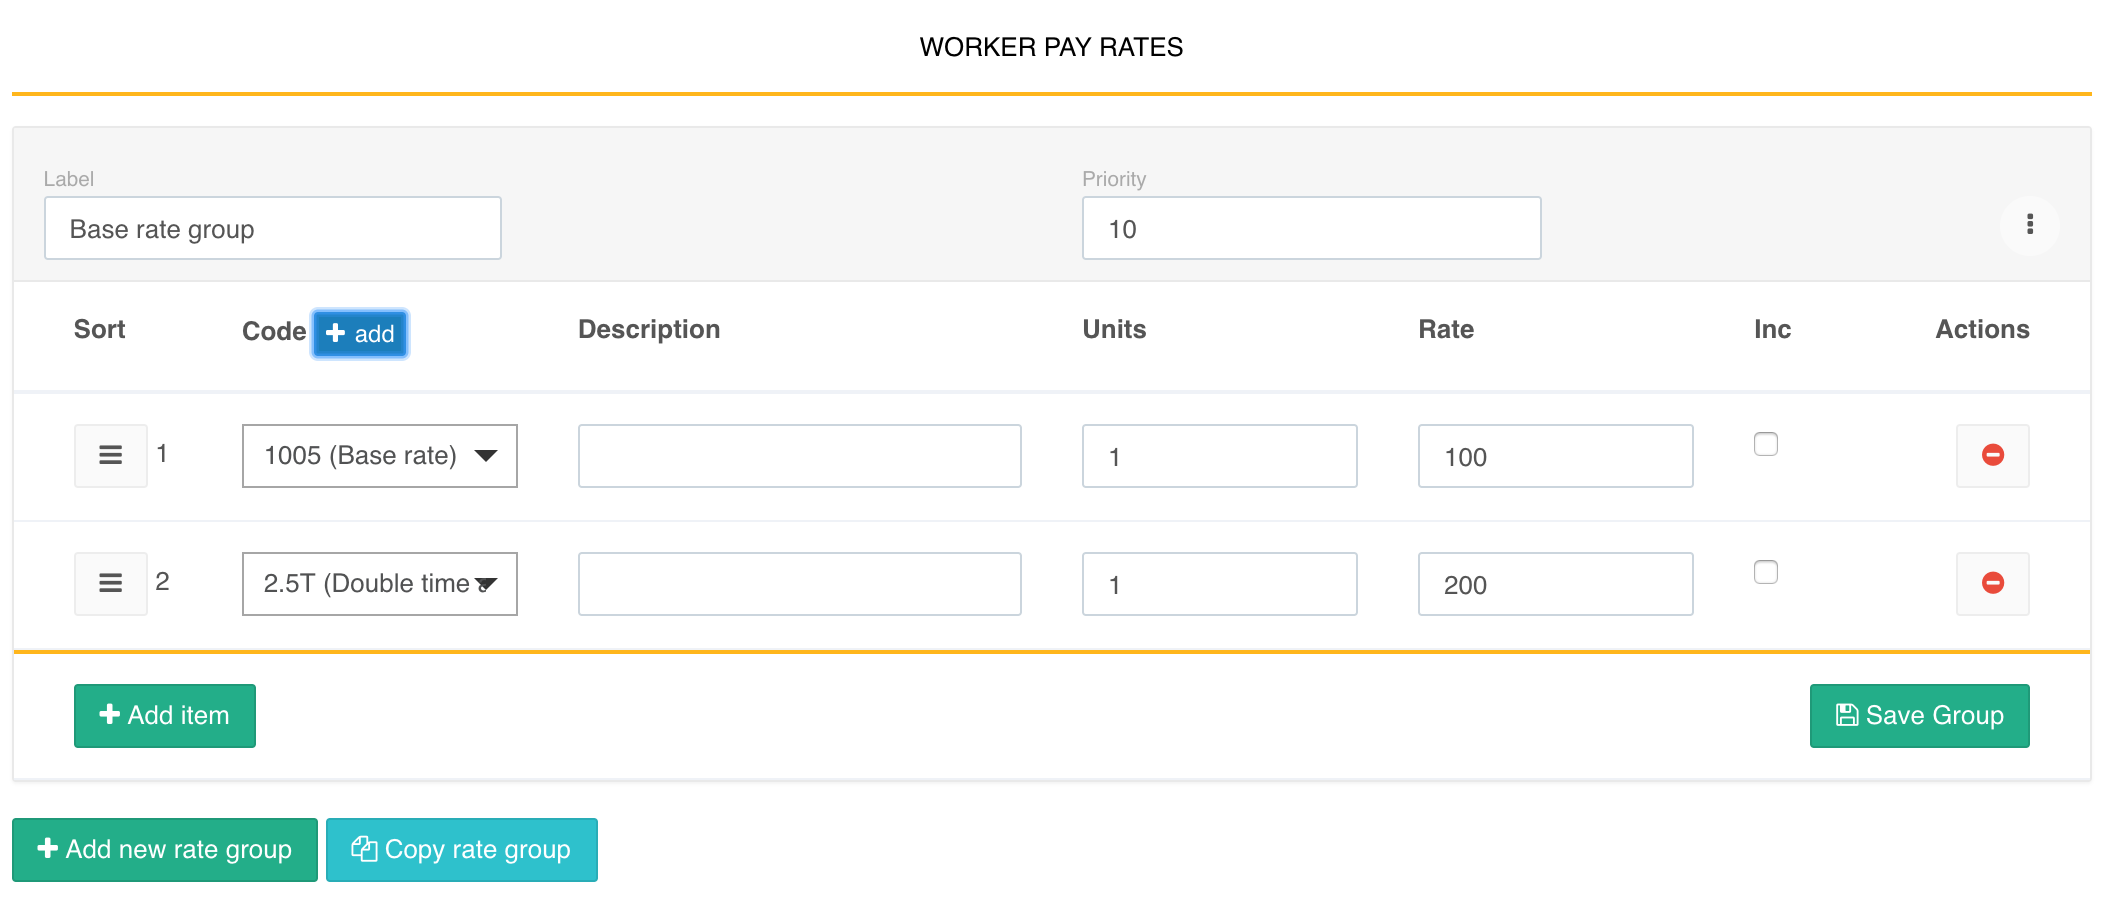 Payroll management tools allow multiple worker pay rates to be created according to EBA or custom award rules, applied automatically during every pay run